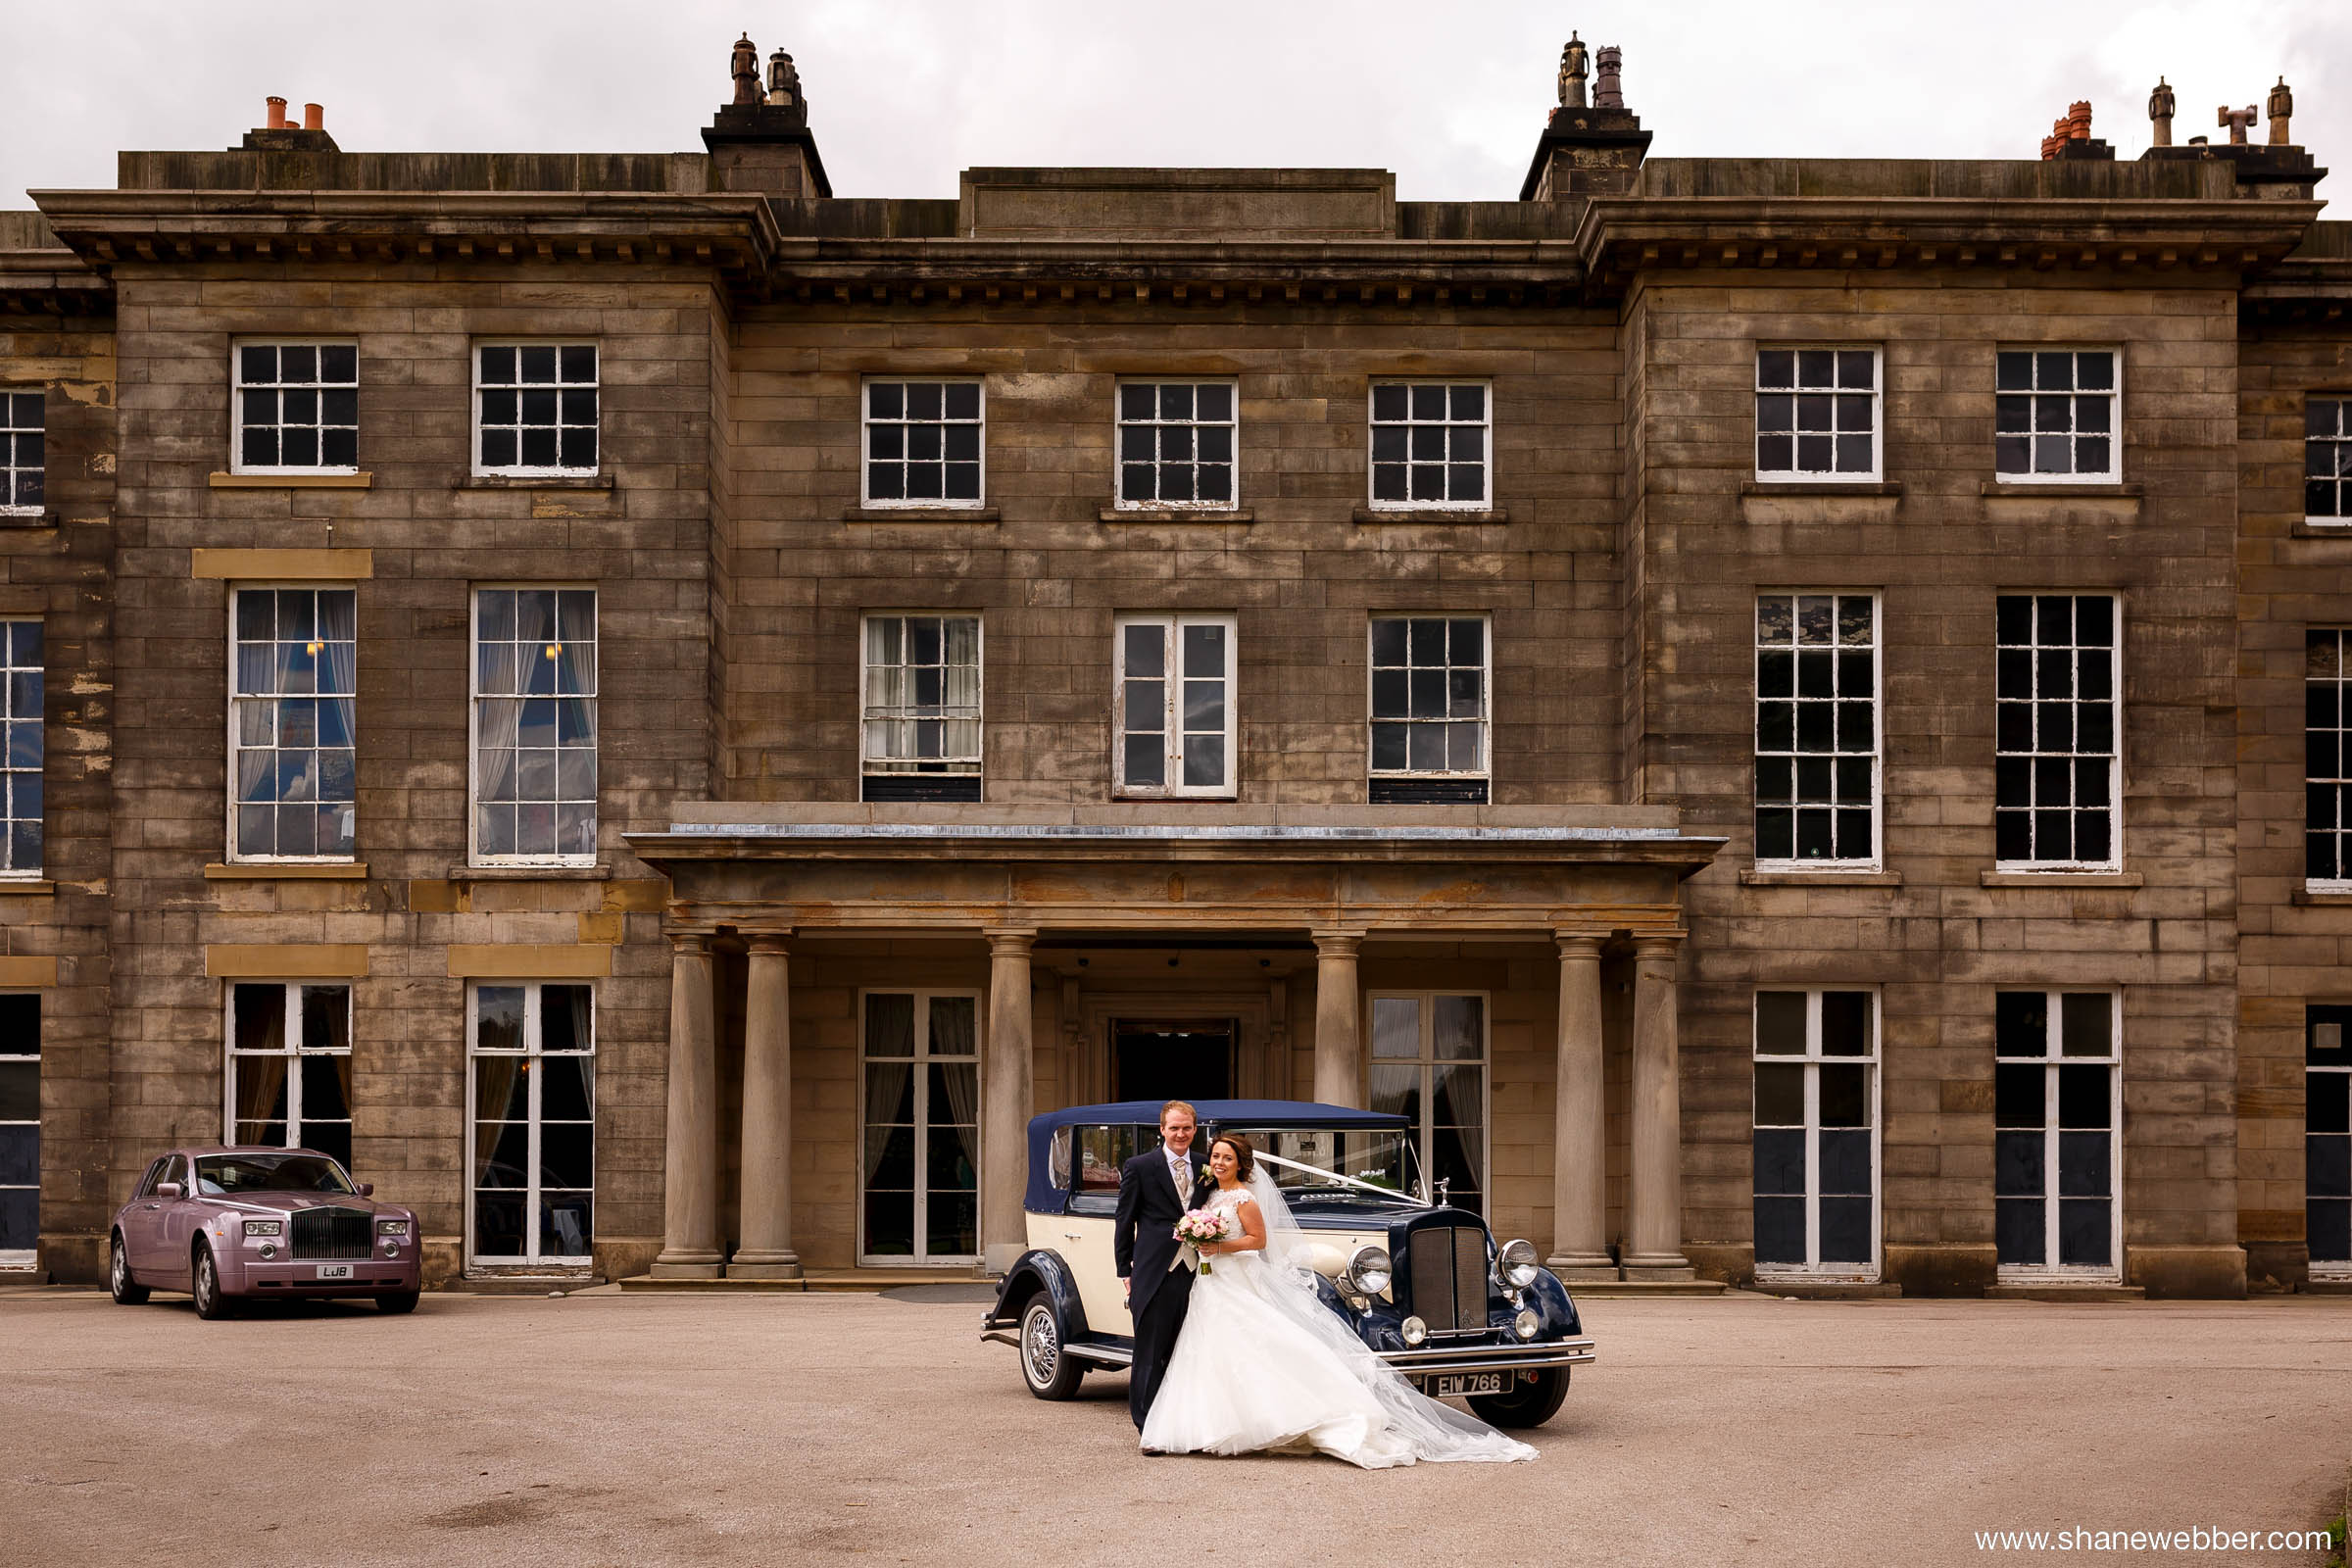 Weddings at Haigh Hall in Wigan